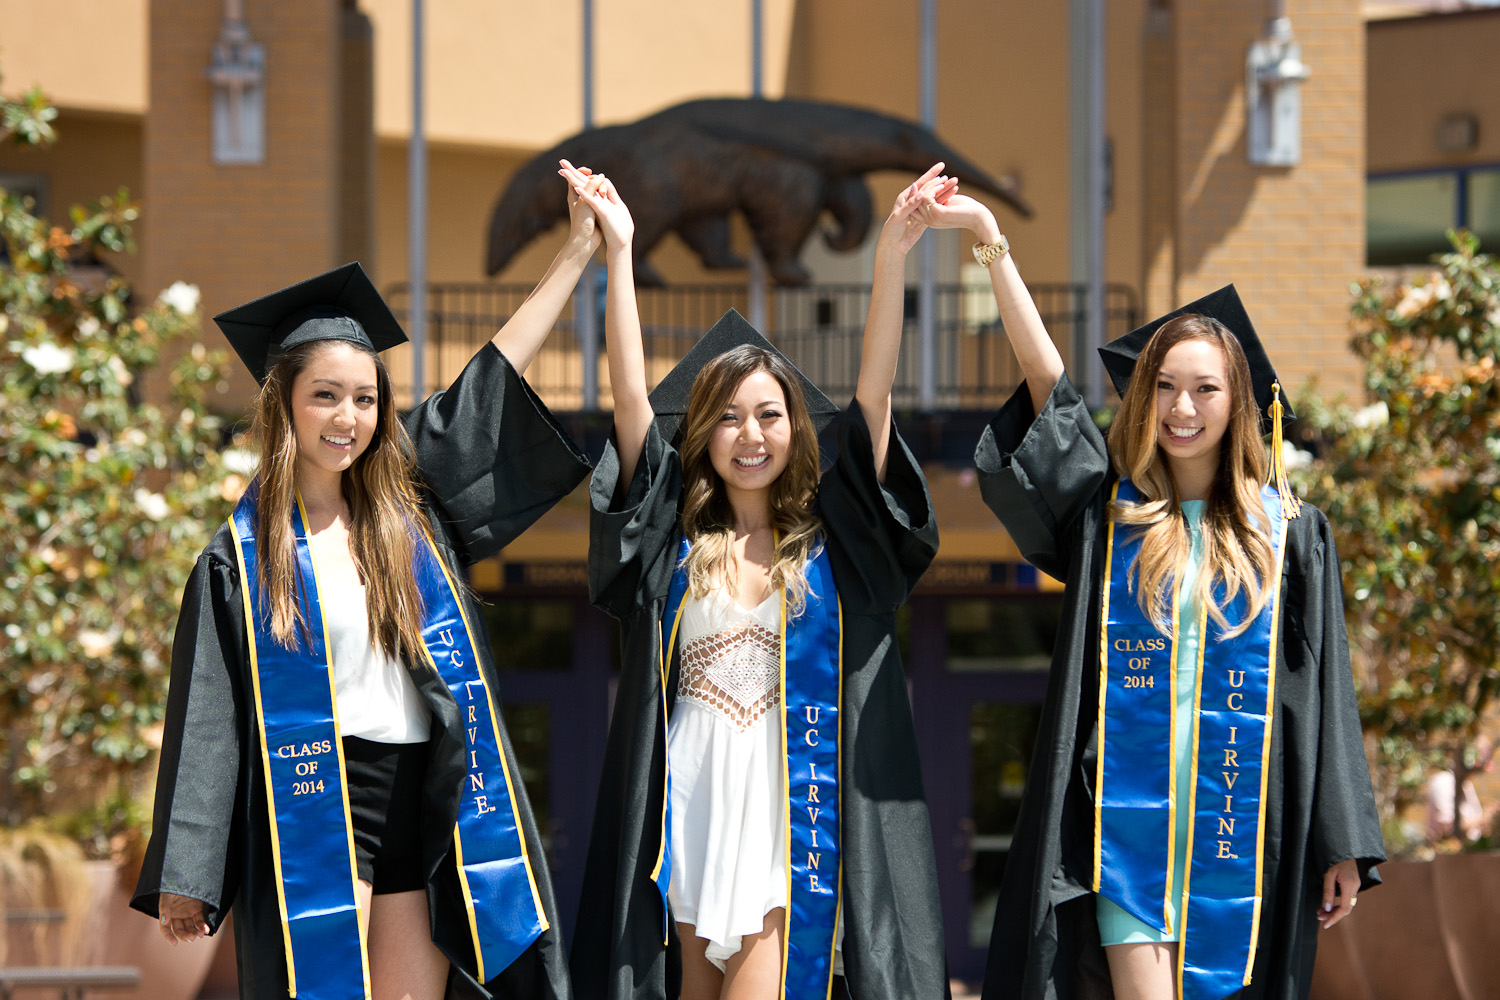 Bryan-Miraflor-Photography-Group-Shawna-Nancy-Lizzy-Grad-Photoshoot-UCI-20140607-0022.jpg